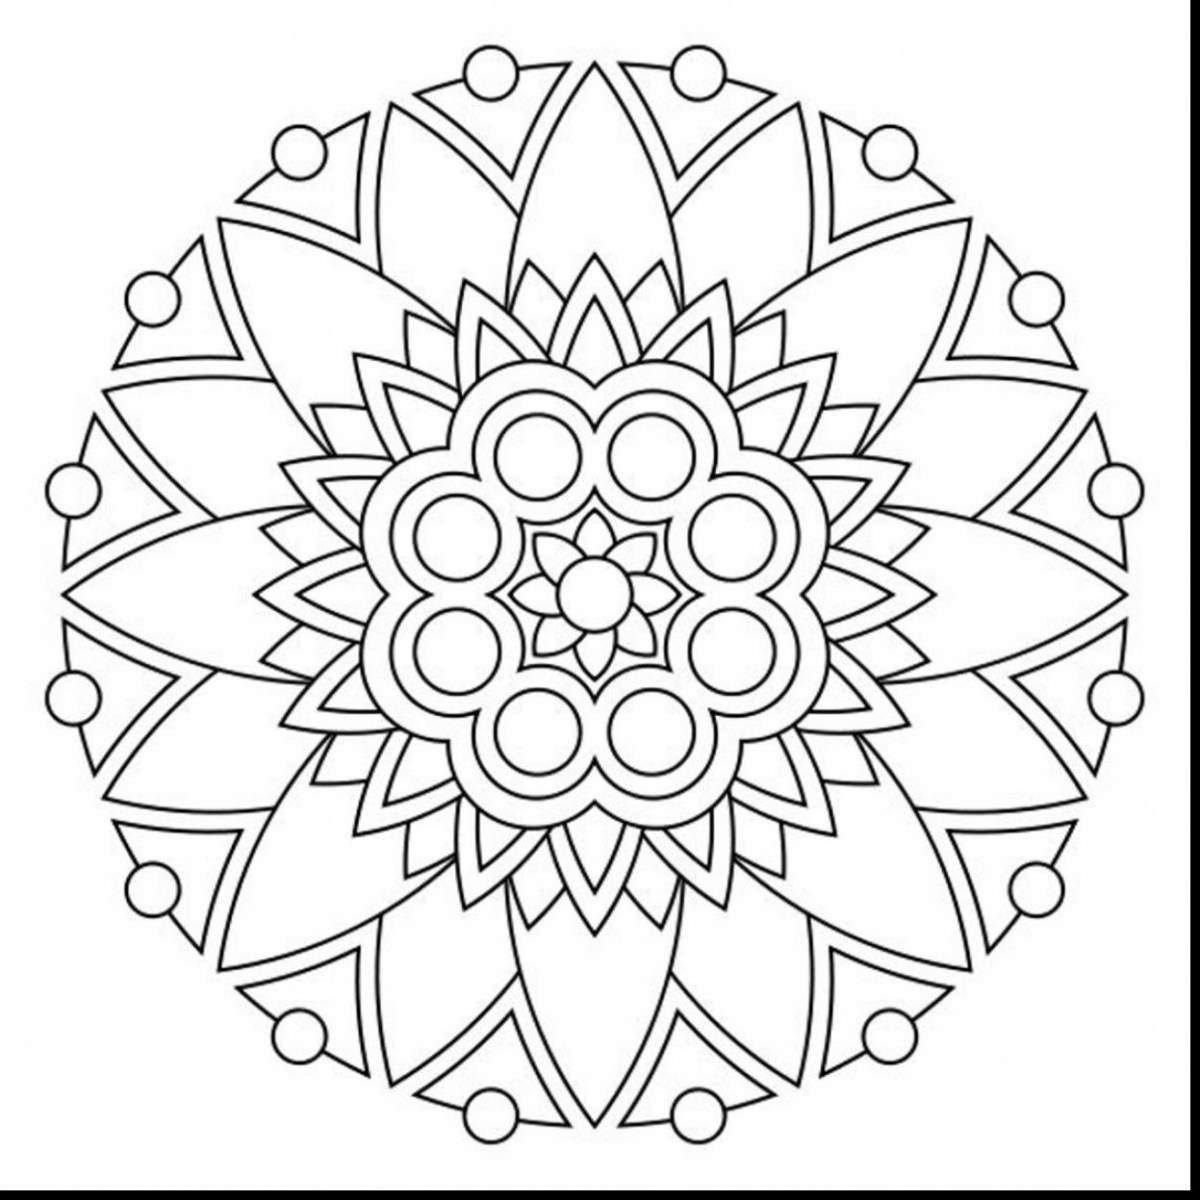 Mandala Coloring Pages Printable Simple Mandala Coloring Pages At Getcolorings Free Printable Birijus Com